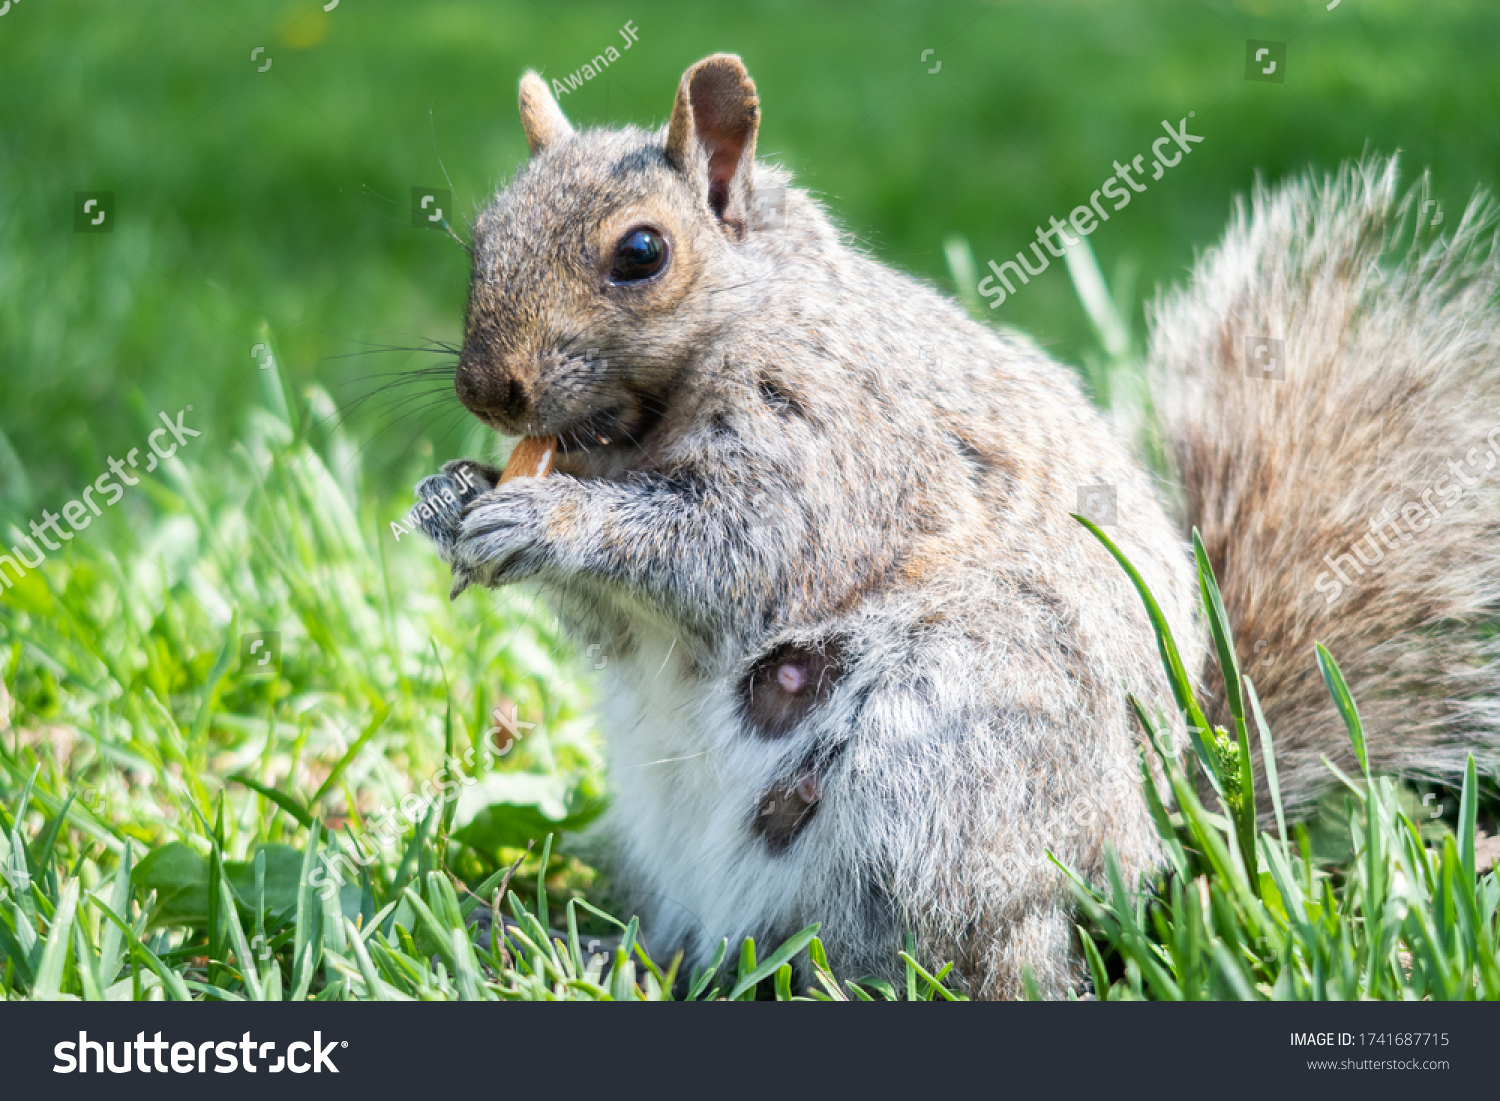 stock-photo-a-wild-eastern-gray-squirrel